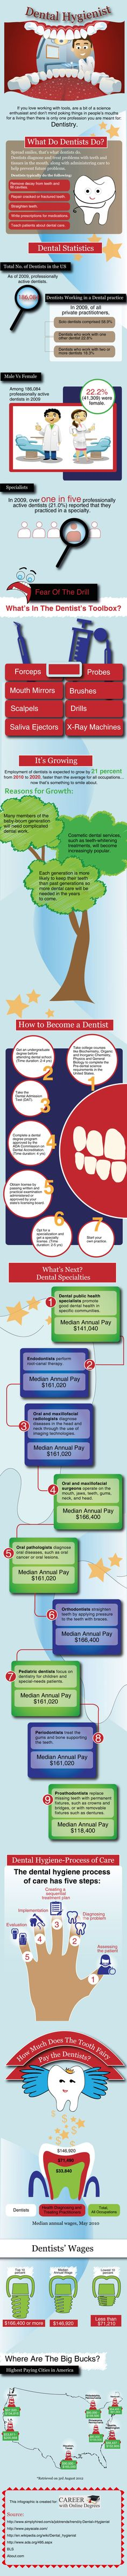 Thinking about being a dental hygienist? This infographic breaks up the salaries, steps and best practice. Logo Dental, Dental Humor, Dental Hygienist, Dental Implants, Dental World, Dental Life, Dental Health, Oral Health, Health Care